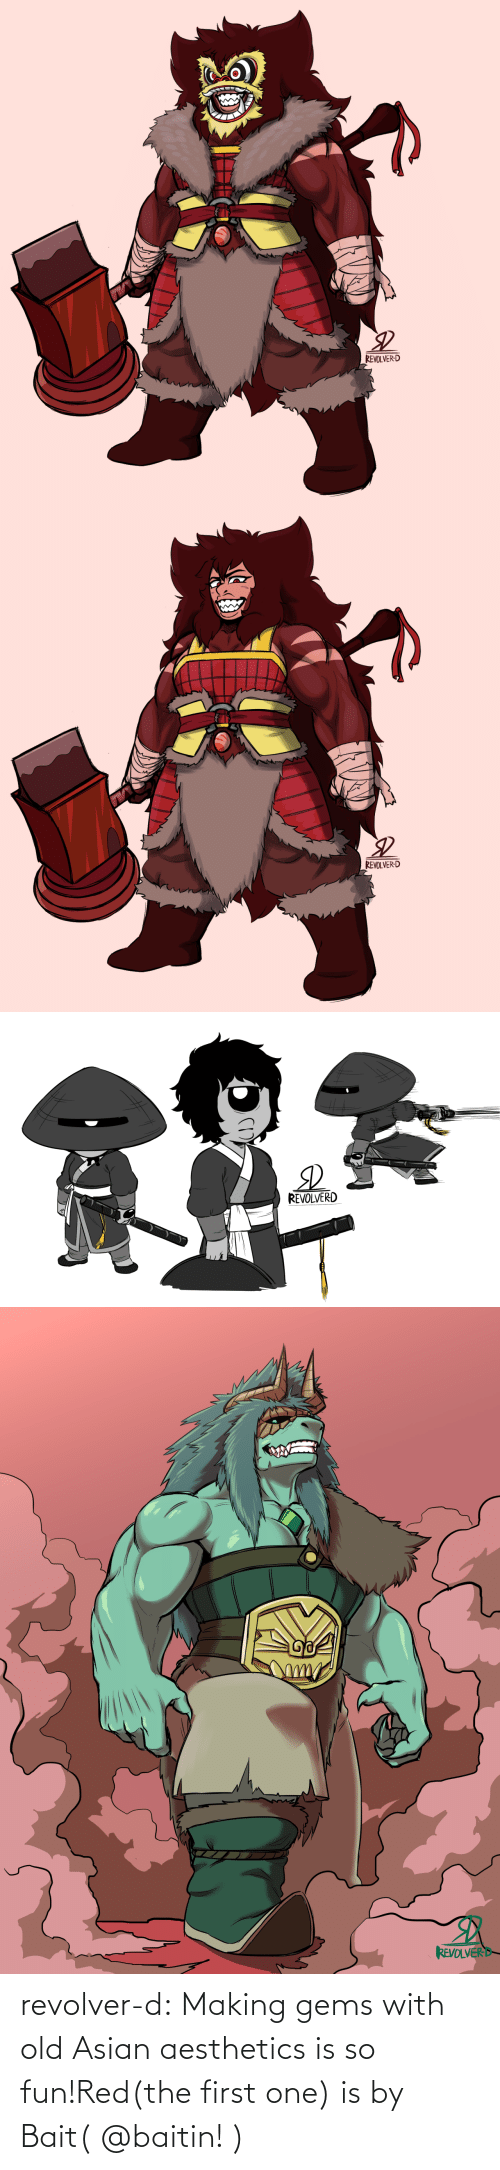 Old: revolver-d:  Making gems with old Asian aesthetics is so fun!Red(the first one) is by Bait( @baitin! )